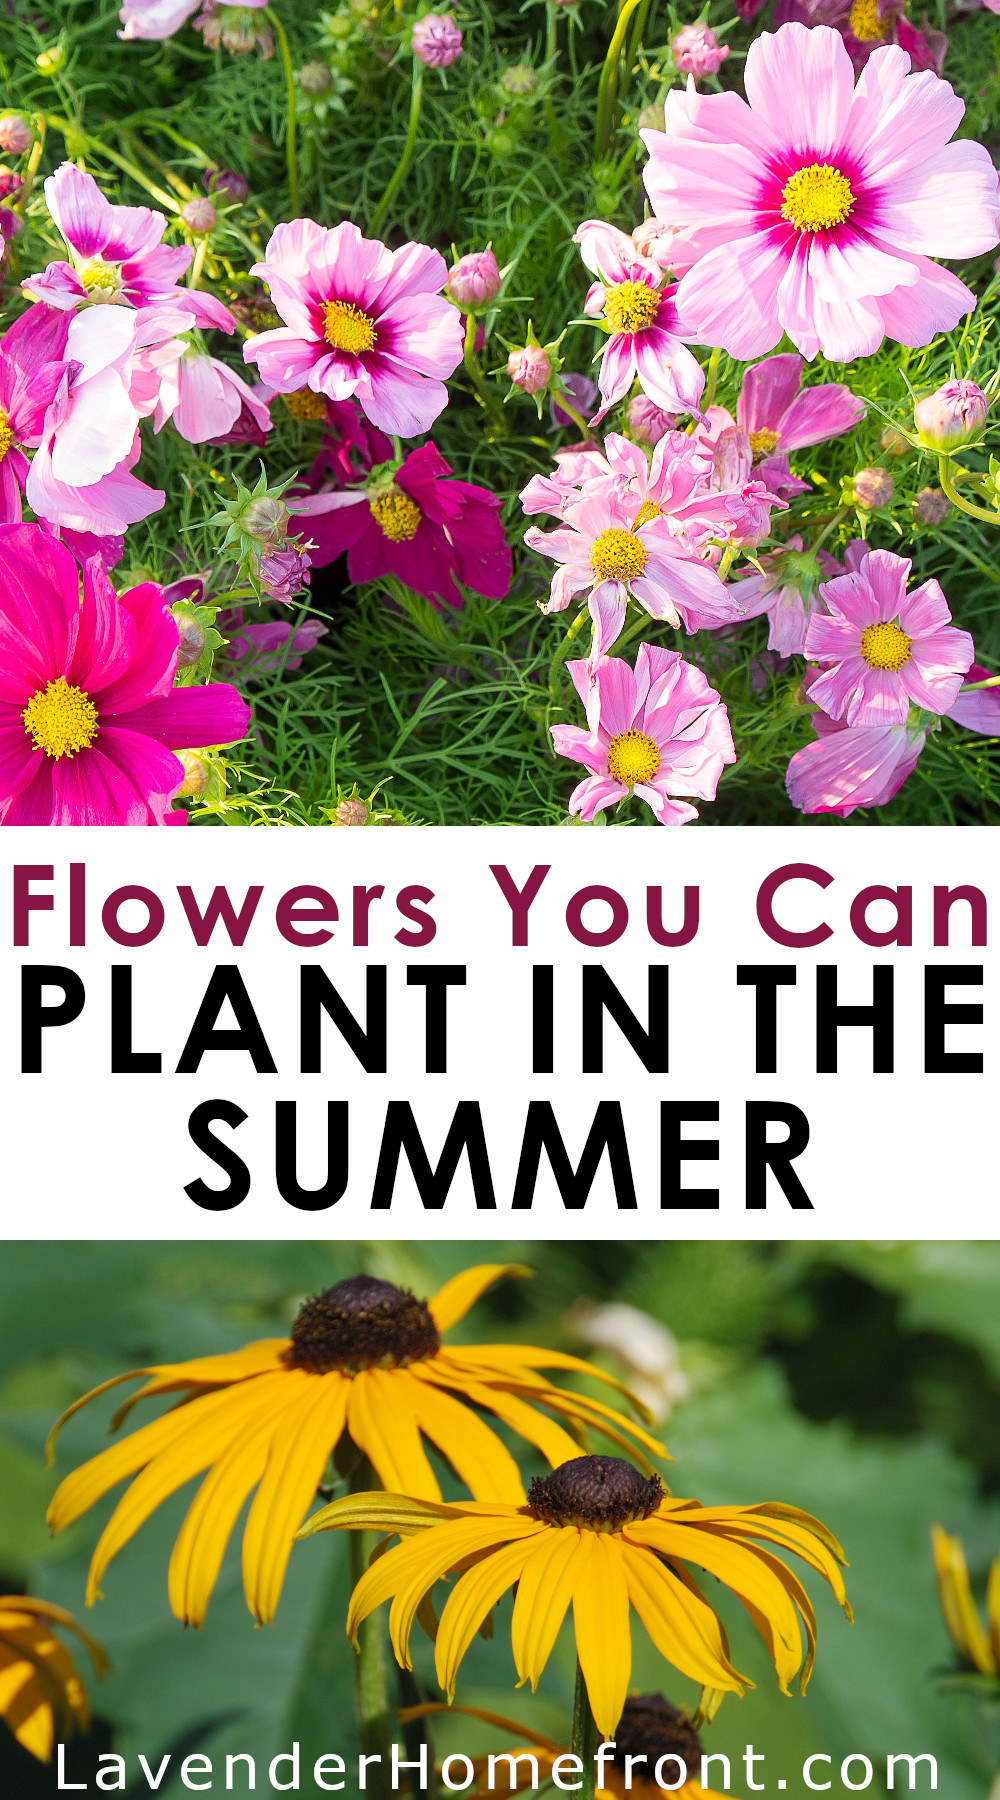 Flowers to plant in the summer and enjoy in fall pinnable image.